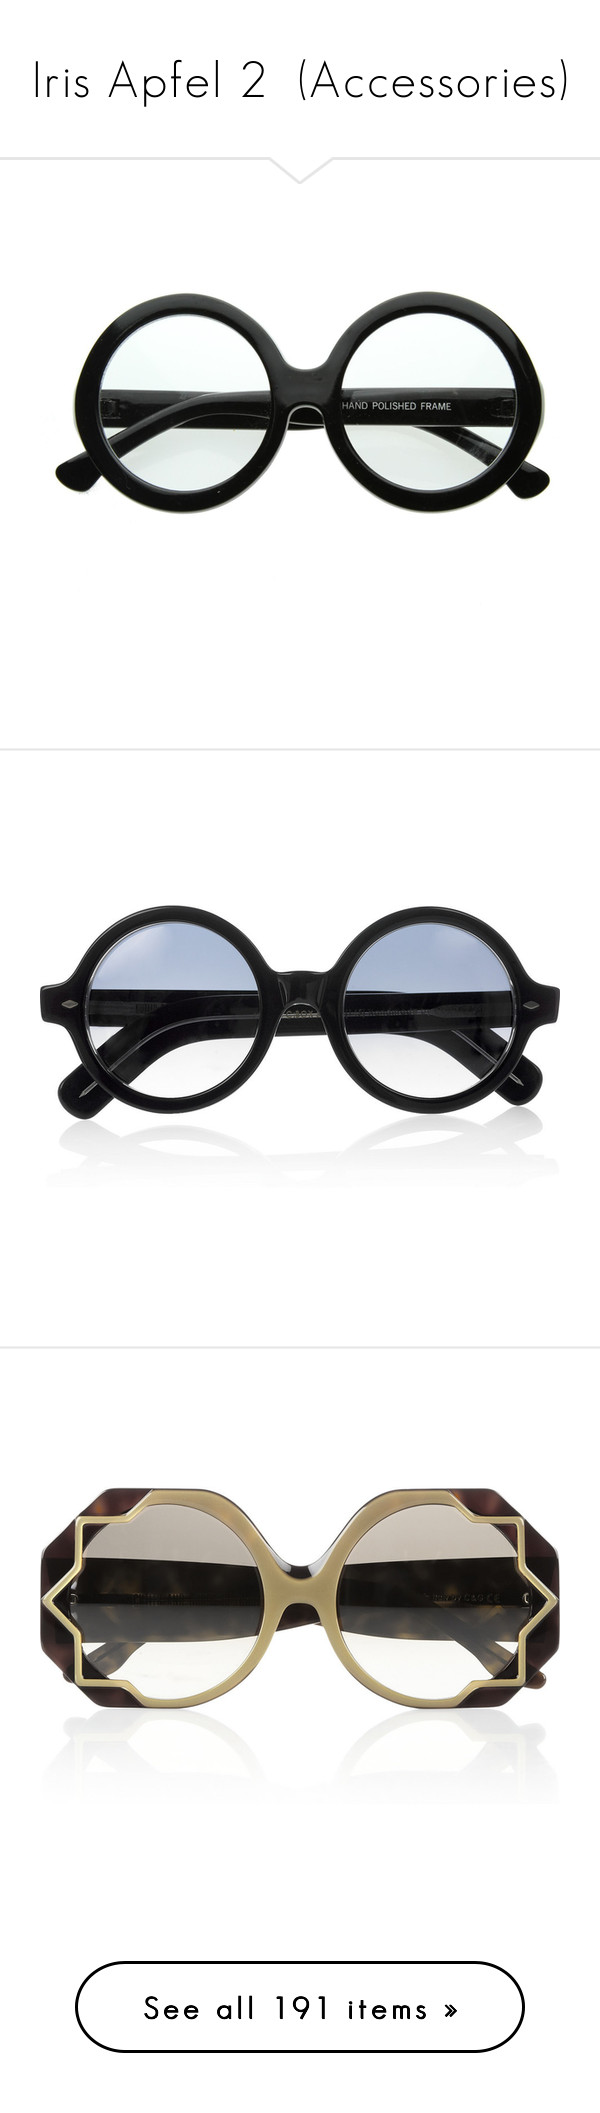 """""""Iris Apfel 2  (Accessories)"""" by dream-flying ❤ liked on Polyvore featuring accessories, eyewear, eyeglasses, rounded glasses, oversized clear glasses, oversized eyewear, clear eye glasses, round eyeglasses, sunglasses and glasses"""